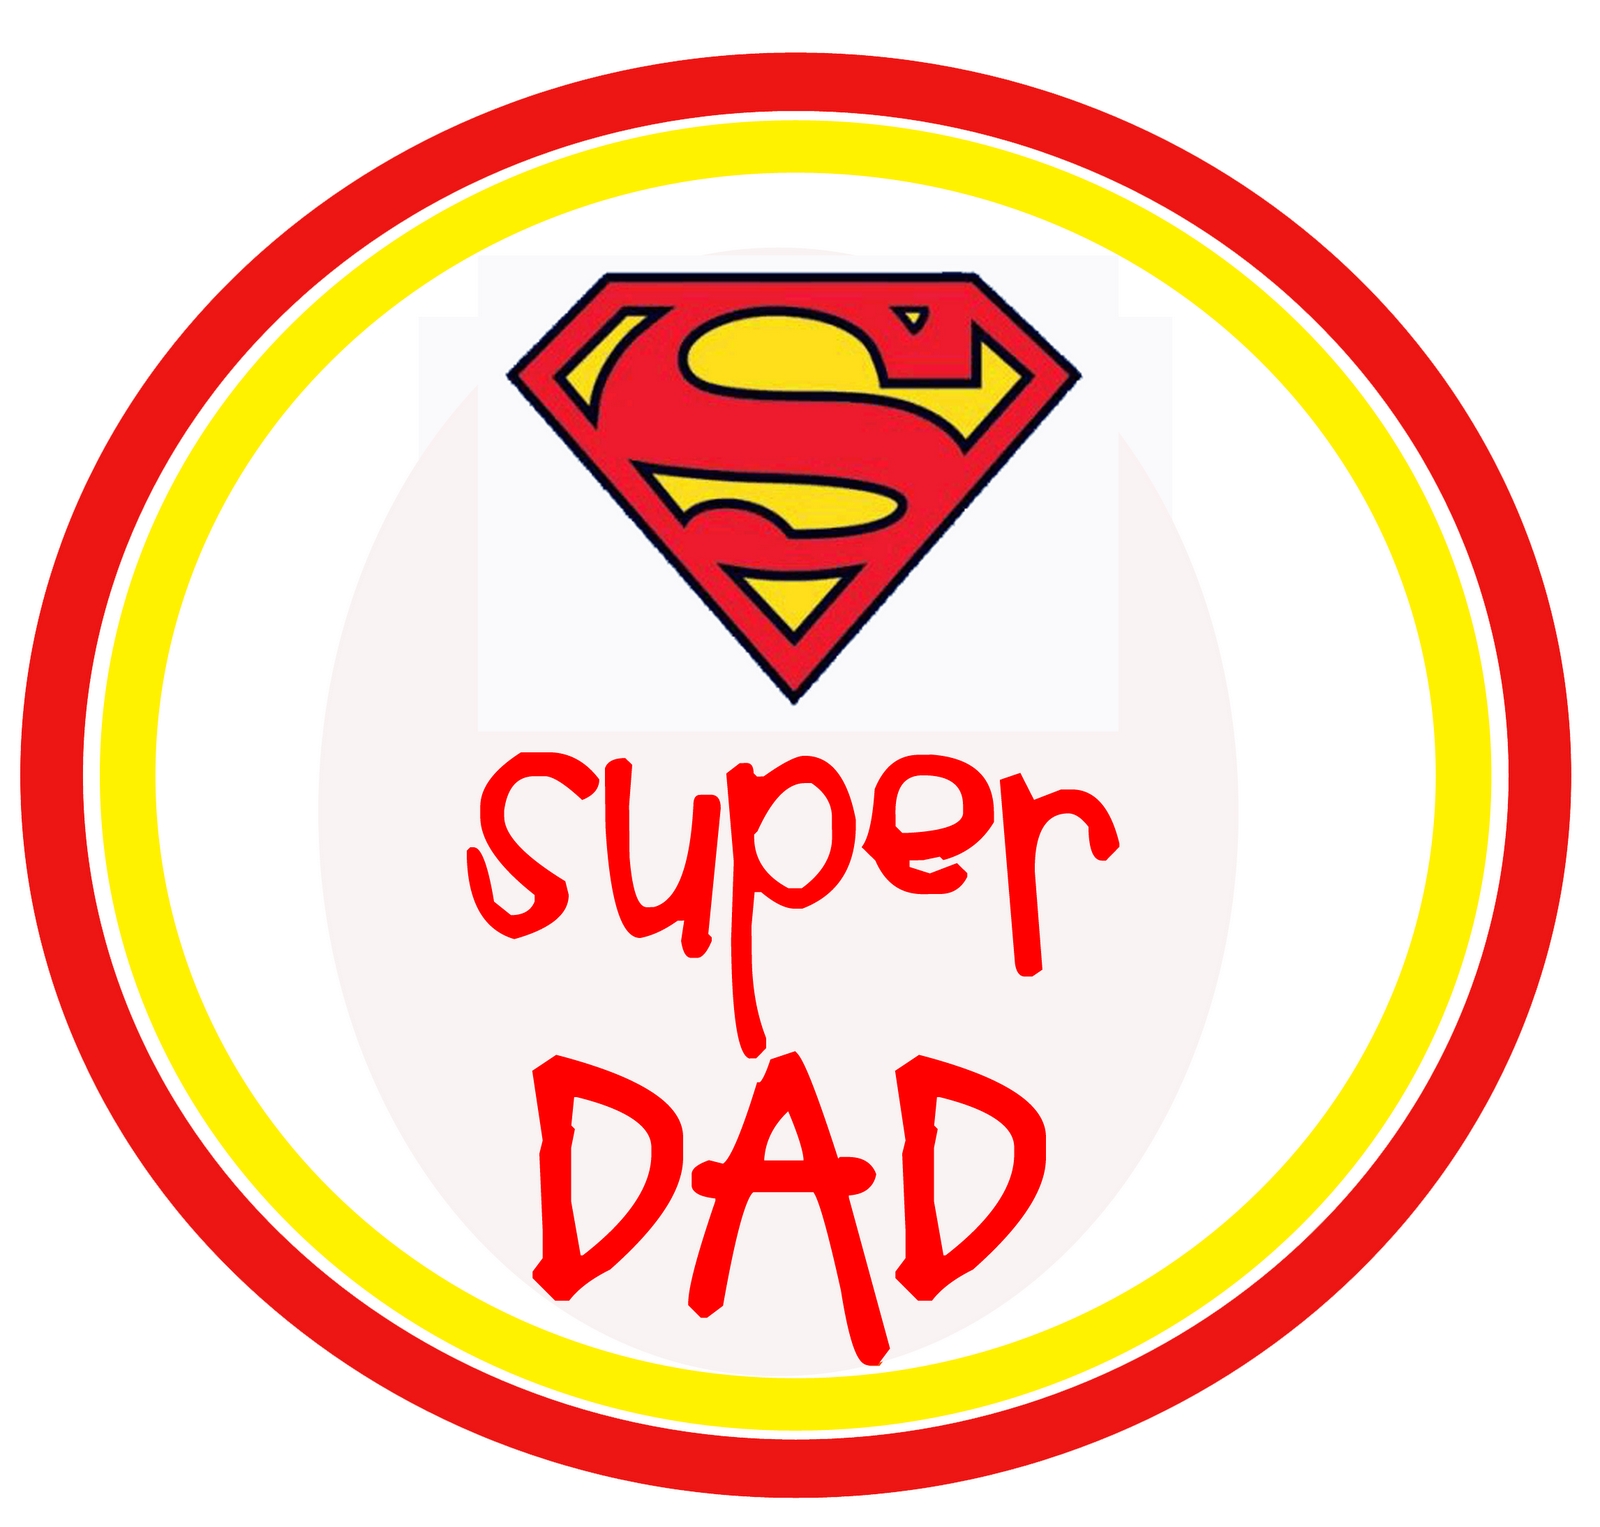 Love clipart dad.